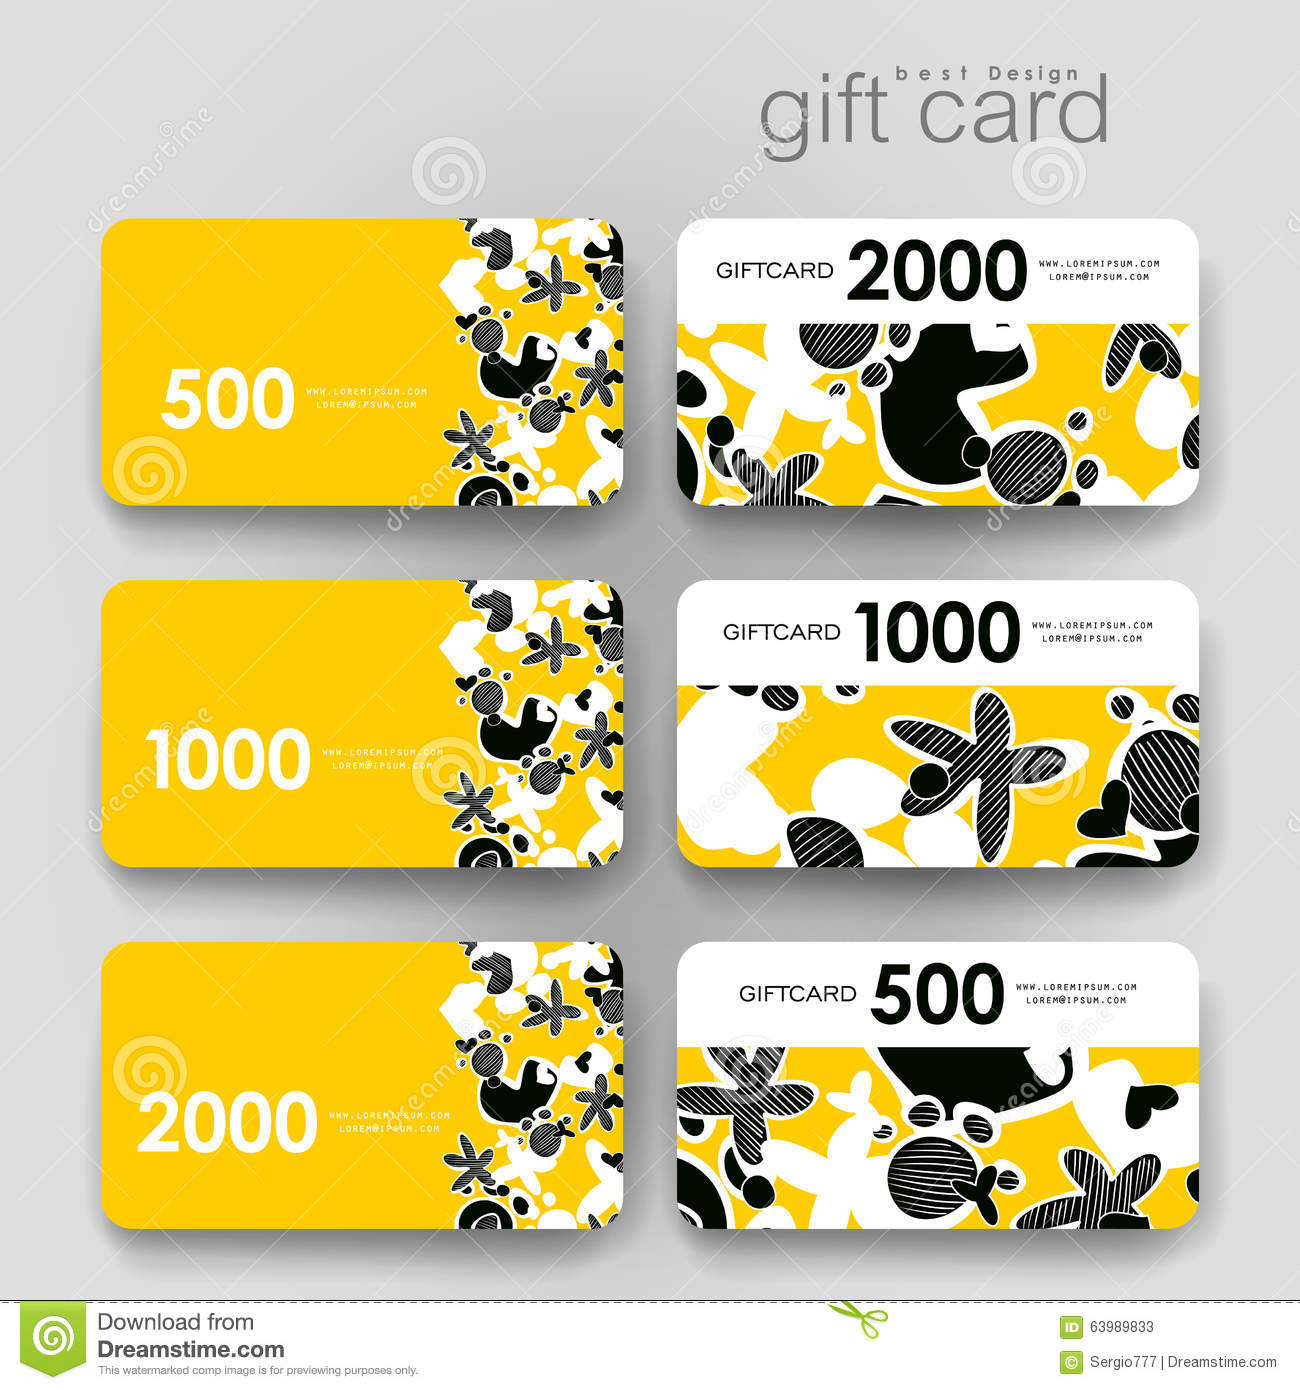 doc coupon layout coupon layout sample coupon template coupon layout 15 raffle ticket templates in microsoft word coupon layout